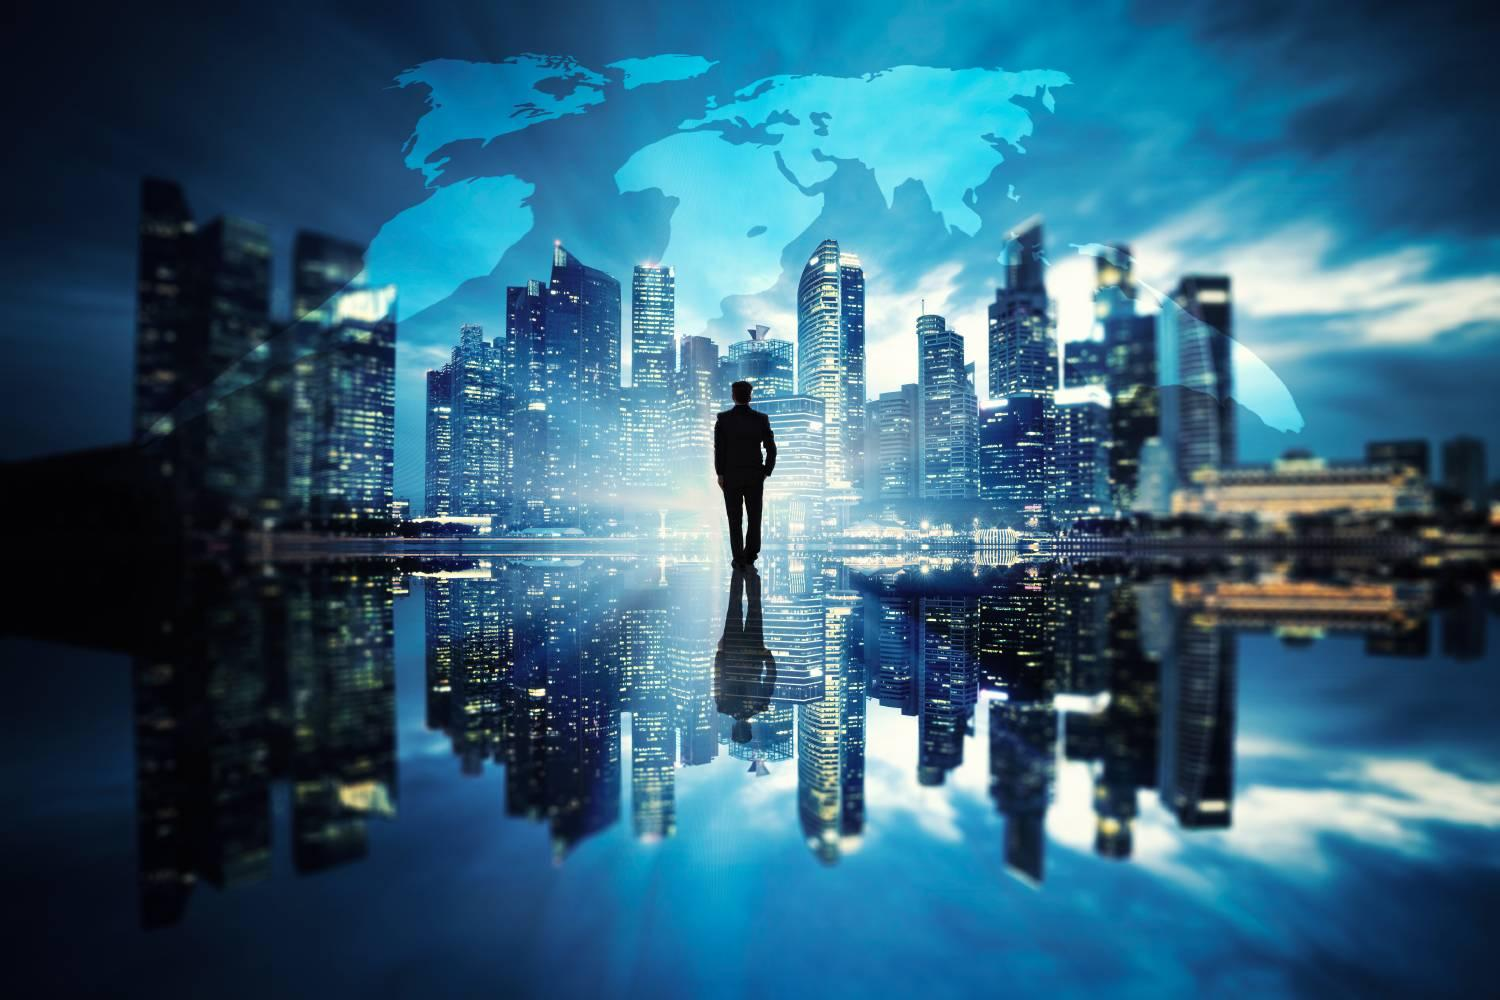 Man standing facing a futuristic Singapore skyline and global world map